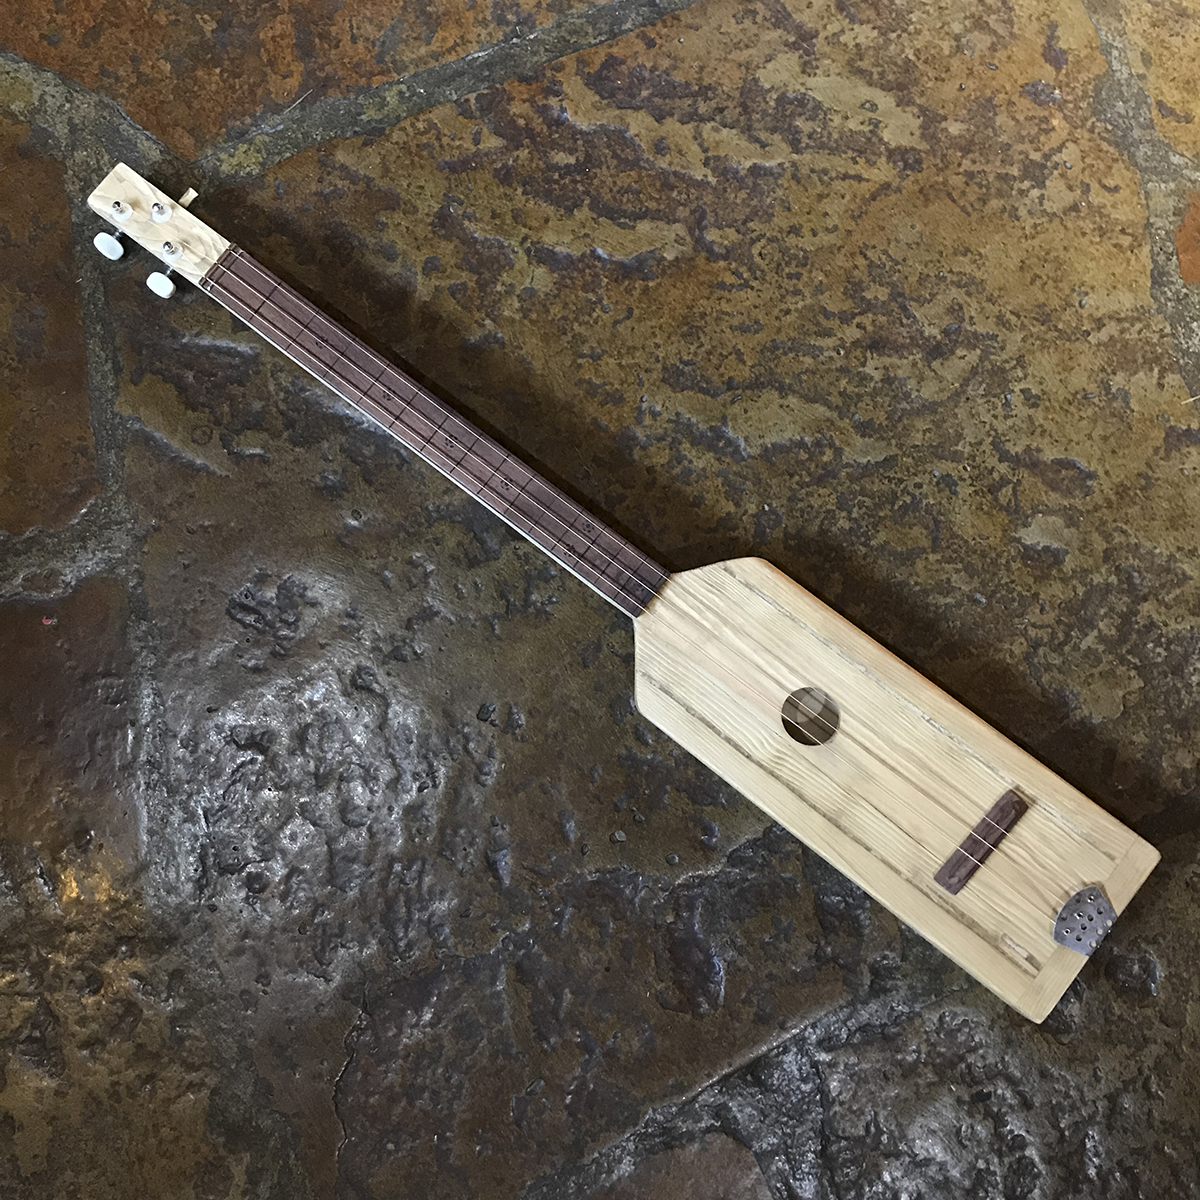 Guitar made from a 2x4